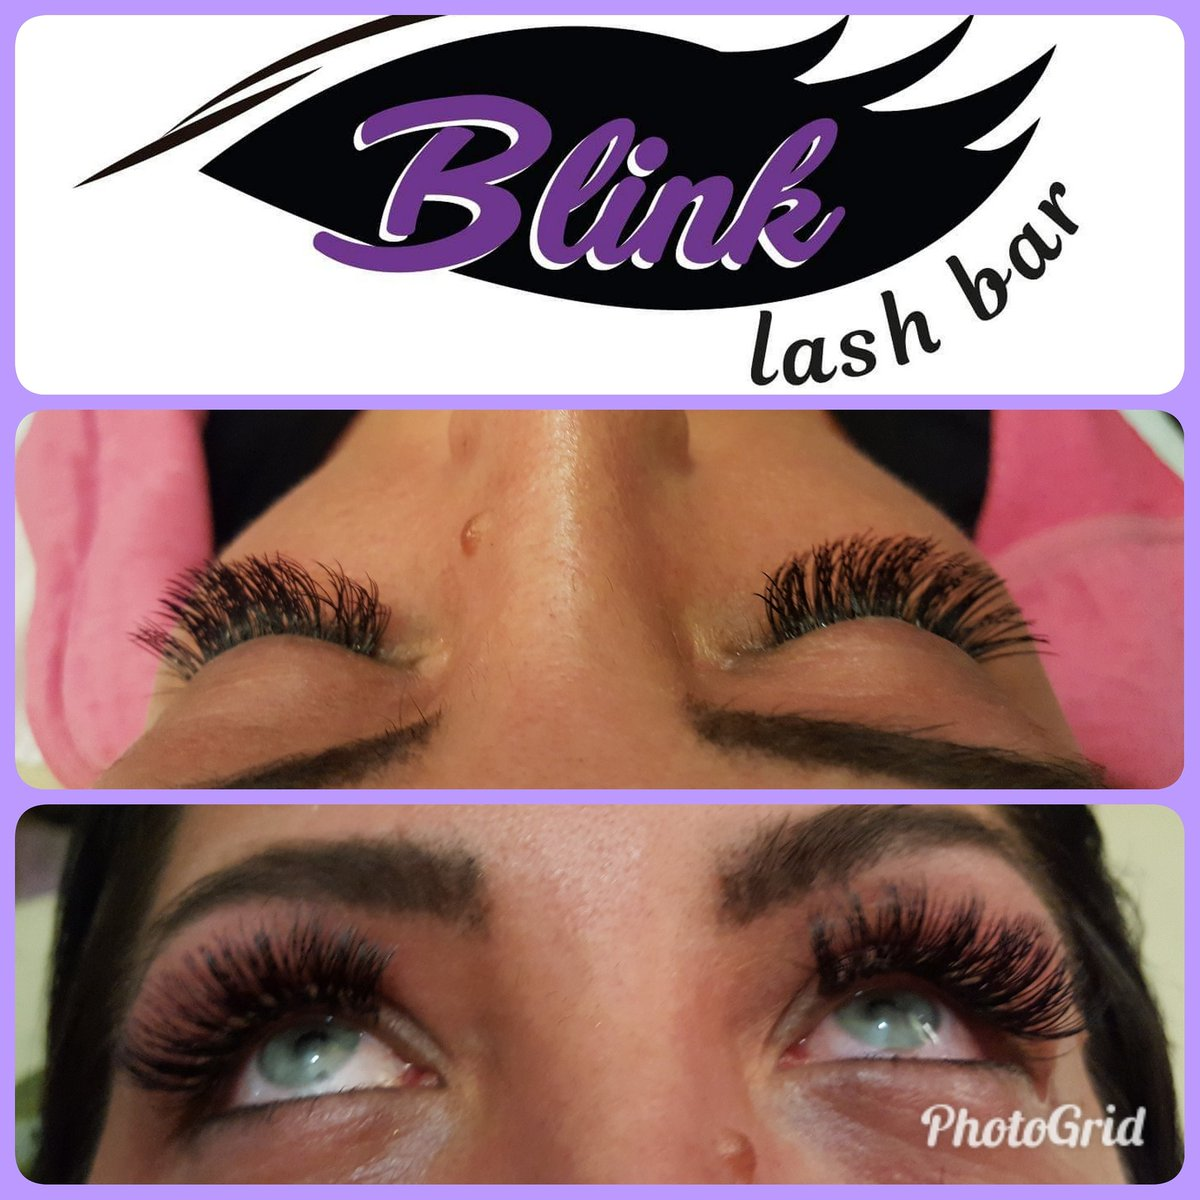 45d60f7fc3e Blink Lash Bar (@blink_Lash_bar) | Twitter